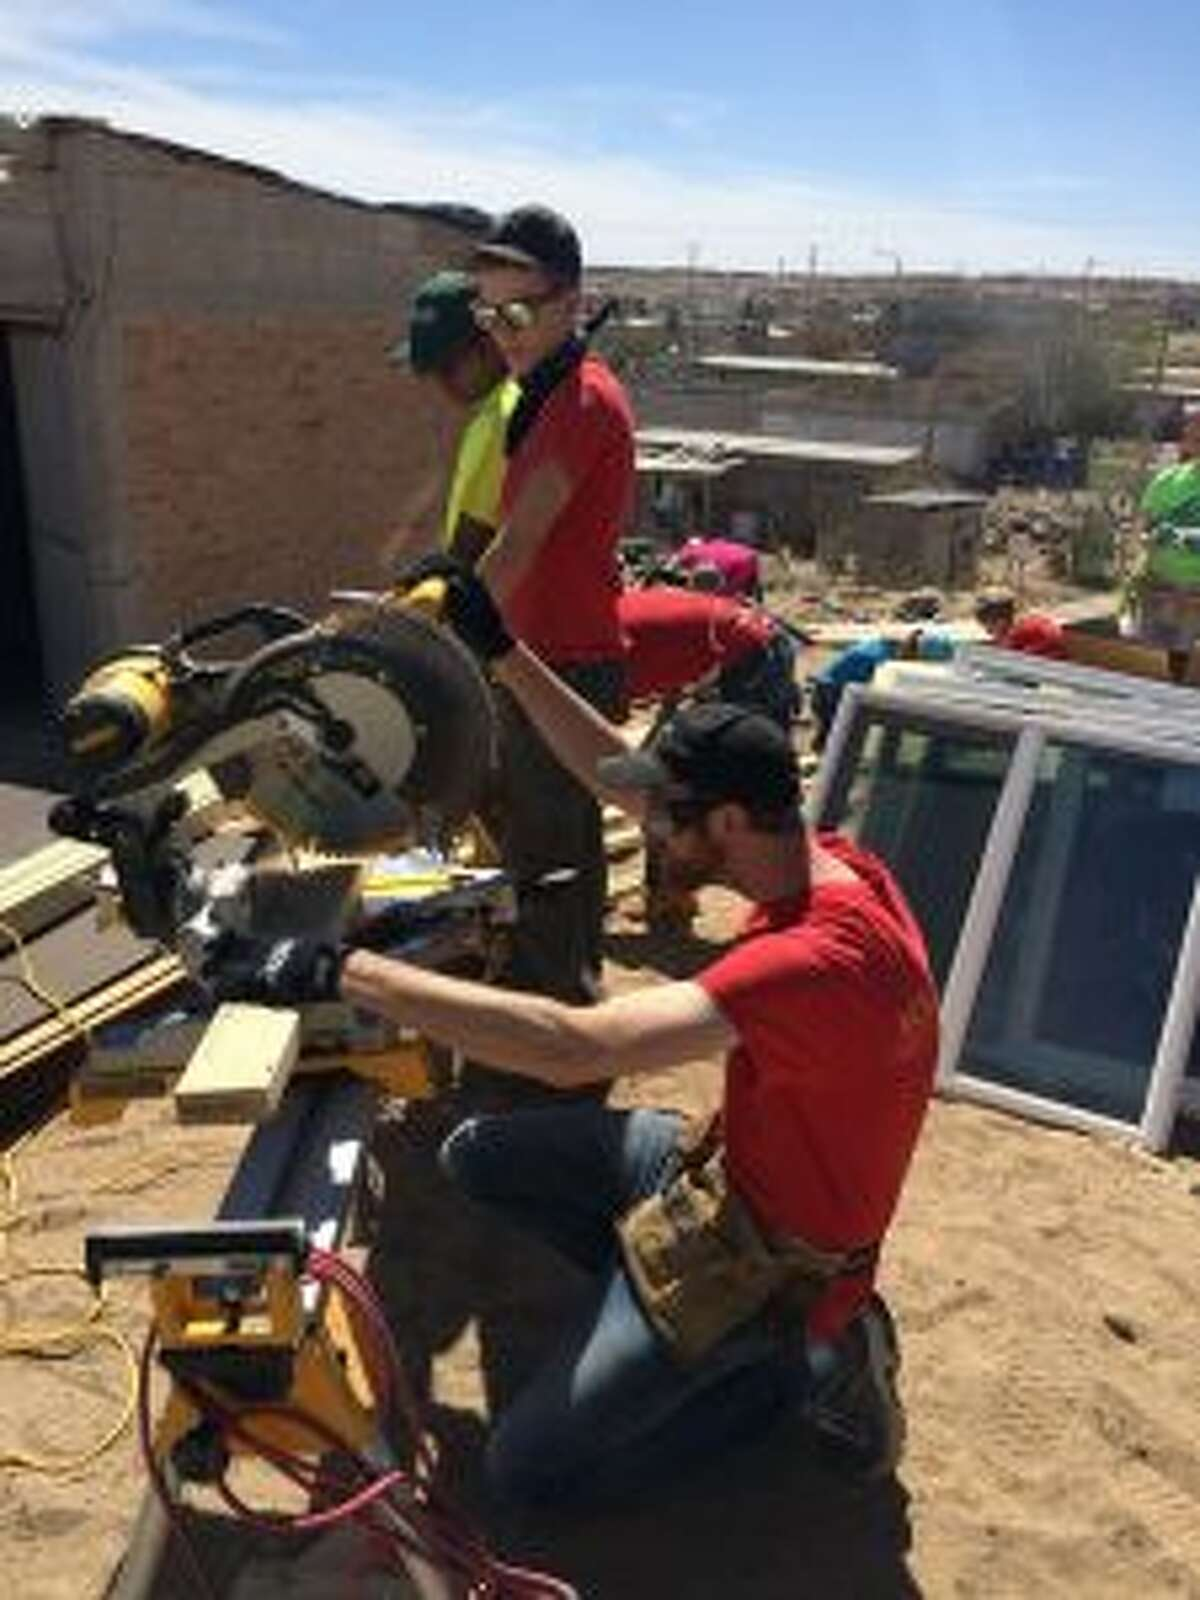 HOME BUILDING: Students from Ferris State University work during their spring break to build a house for a family in need.